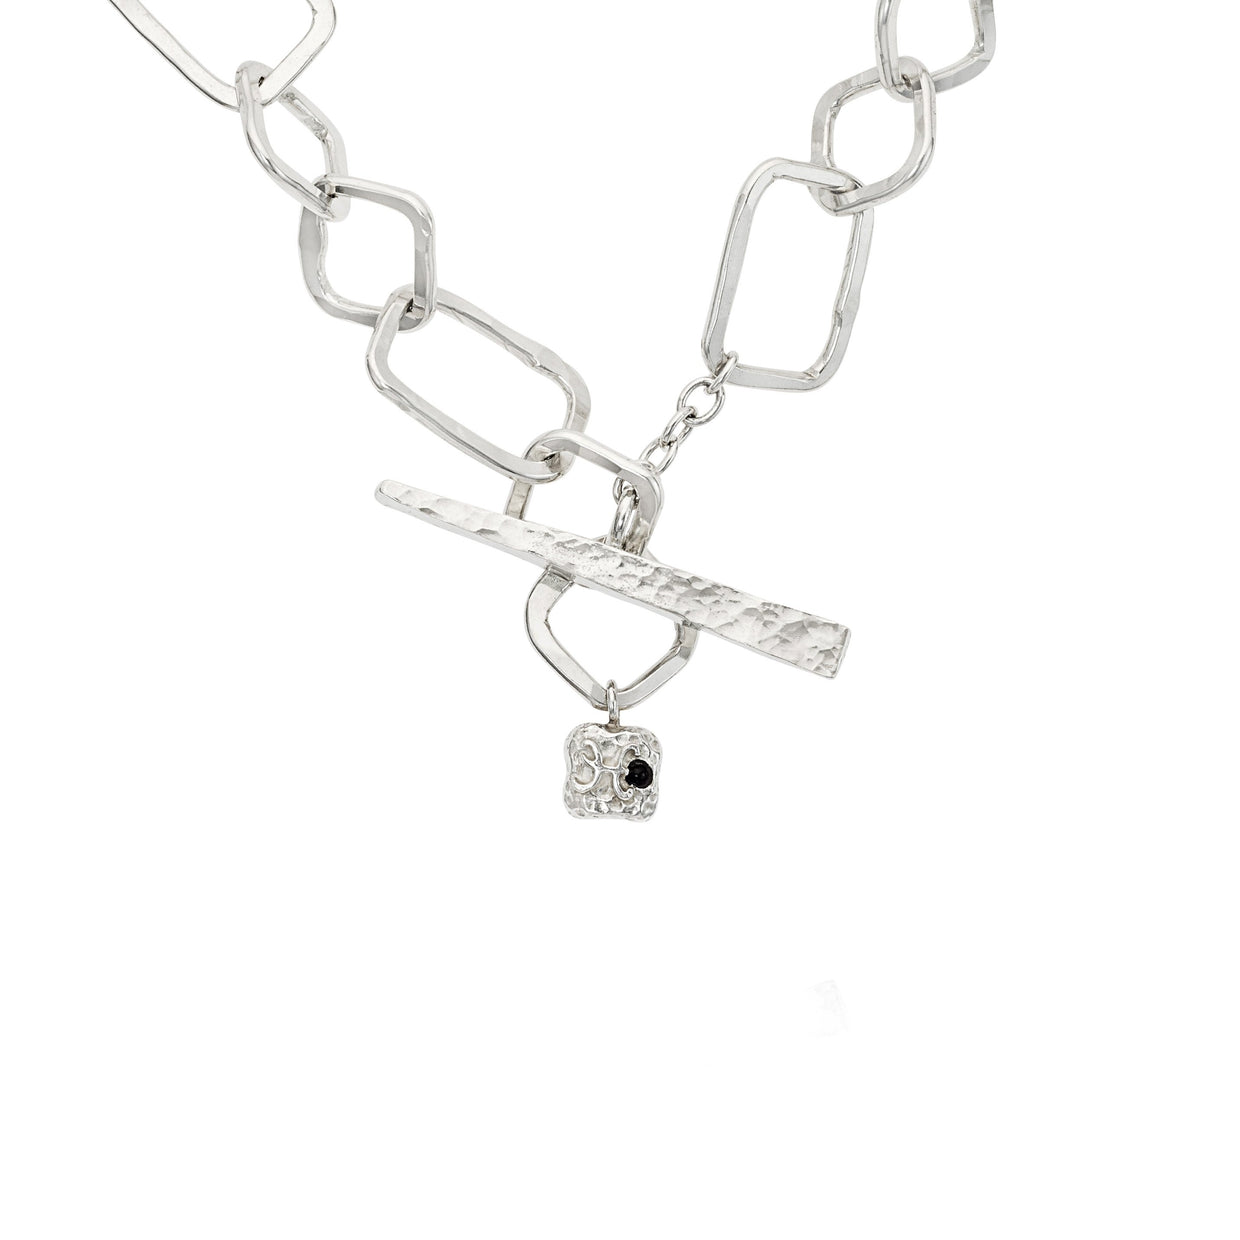 Hamilton & Inches Sterling Silver Heavy 20' Square Chain Link Necklace-Hamilton & Inches